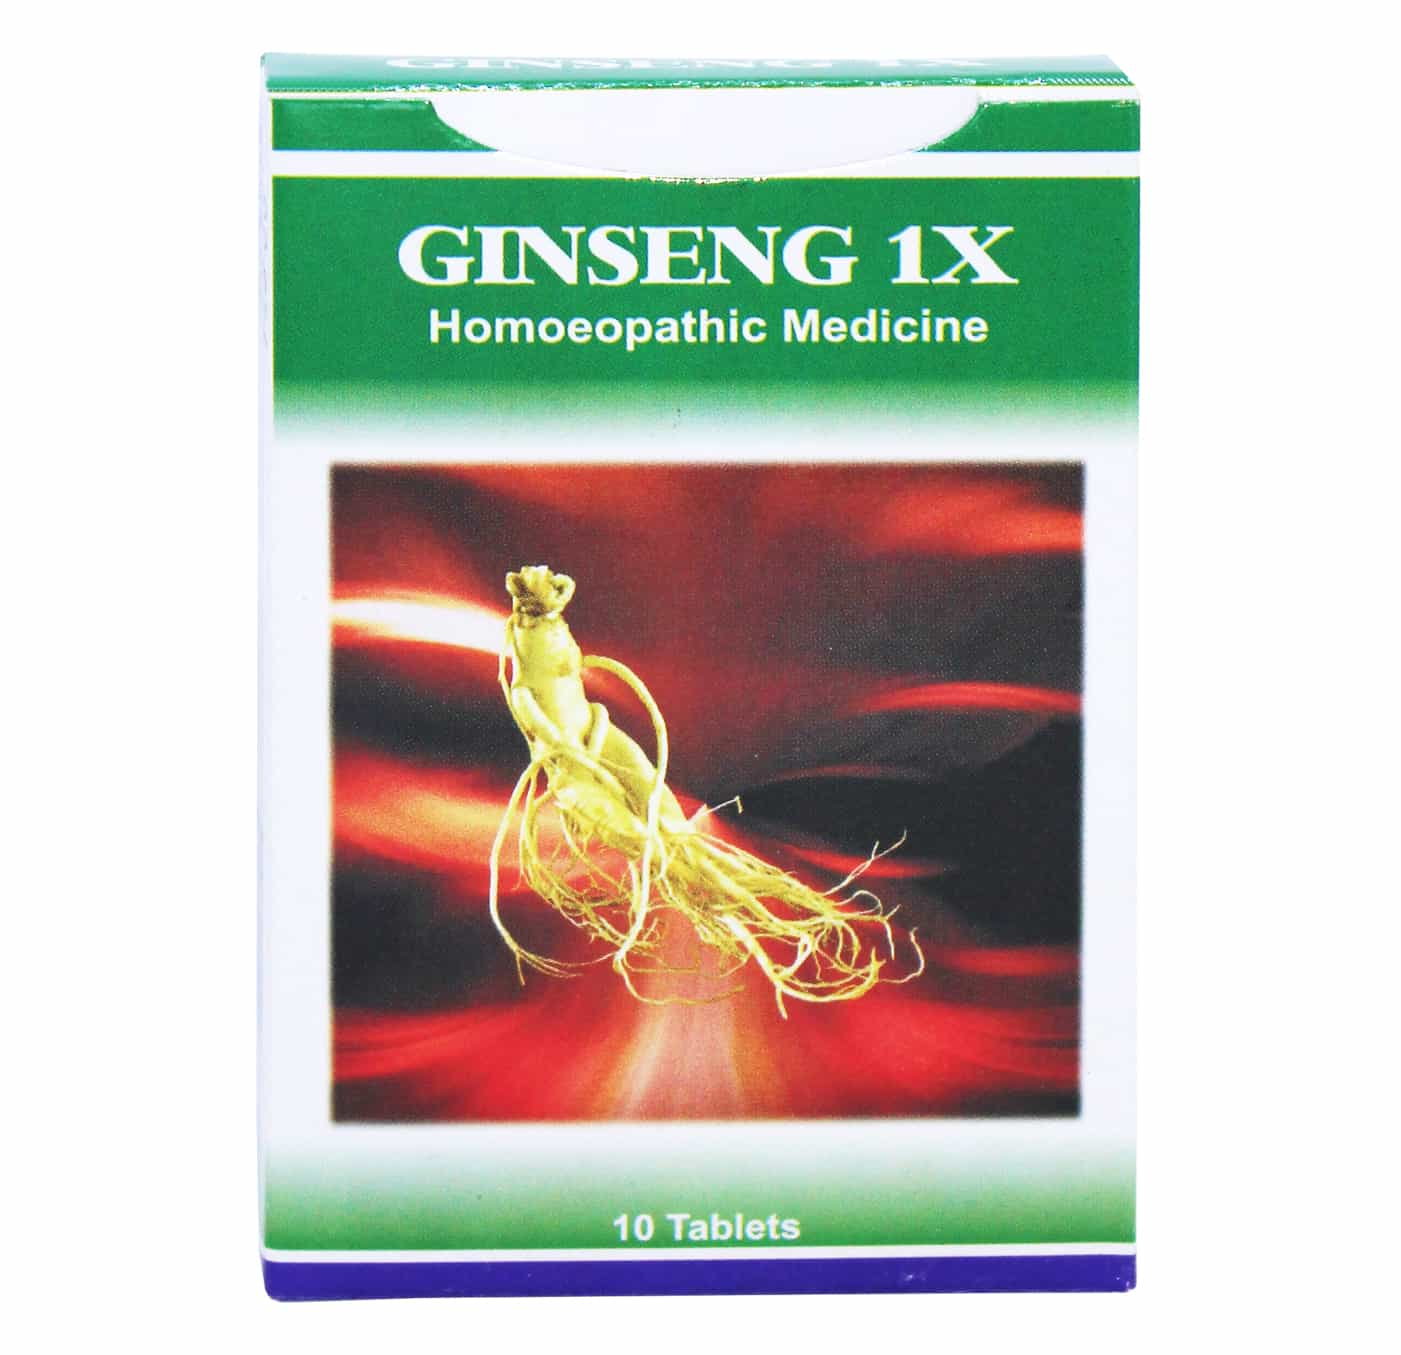 Ginseng 1X Tablet Increase Strength & Stamina style=